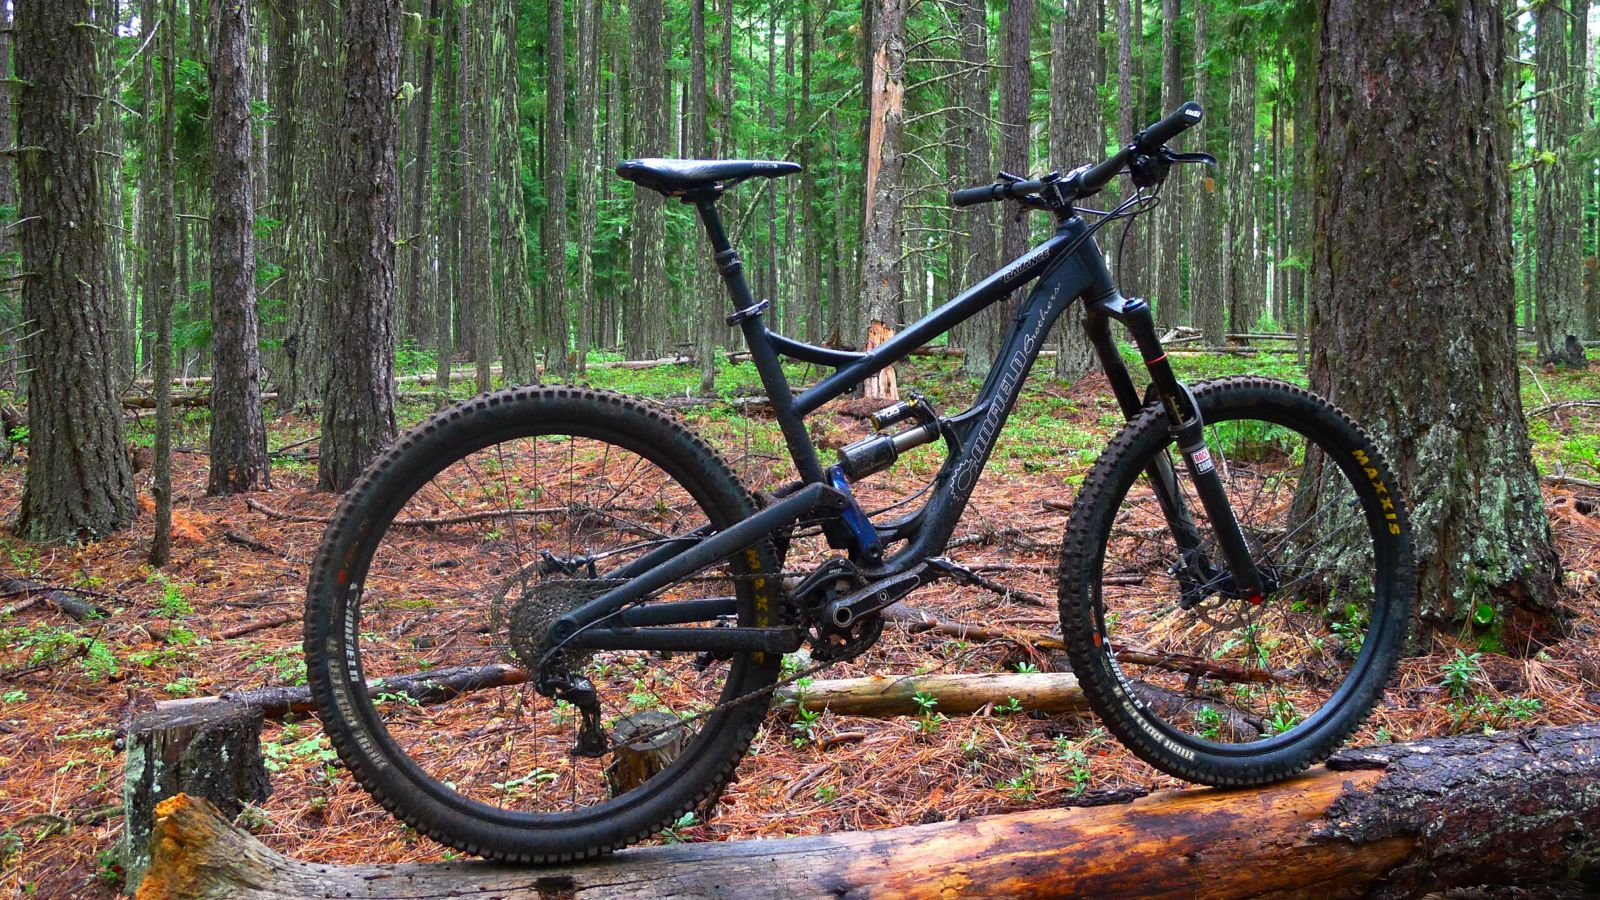 A Canfield Balance Balancing In The Woods Of Oregon The Guys At